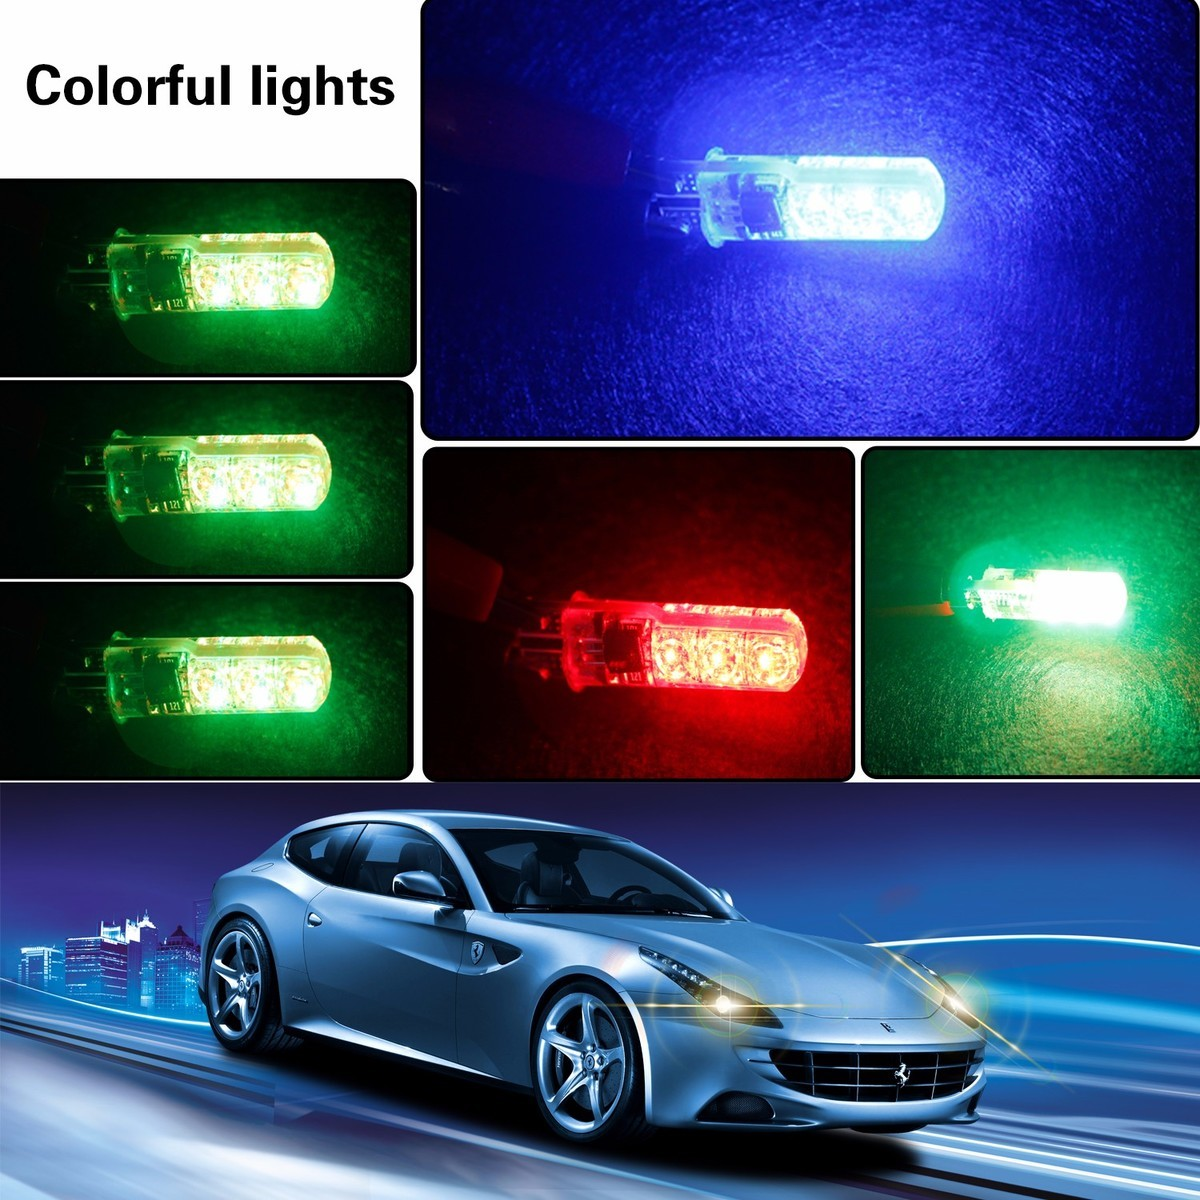 Leadtops t10 w5w rgb led car bulbs with remote control 194 168 rgb leadtops t10 w5w rgb led car bulbs with remote control 194 168 rgb led lamp reading wedge lights strobe 12v silicone 5050 smd bj in signal lamp from parisarafo Image collections